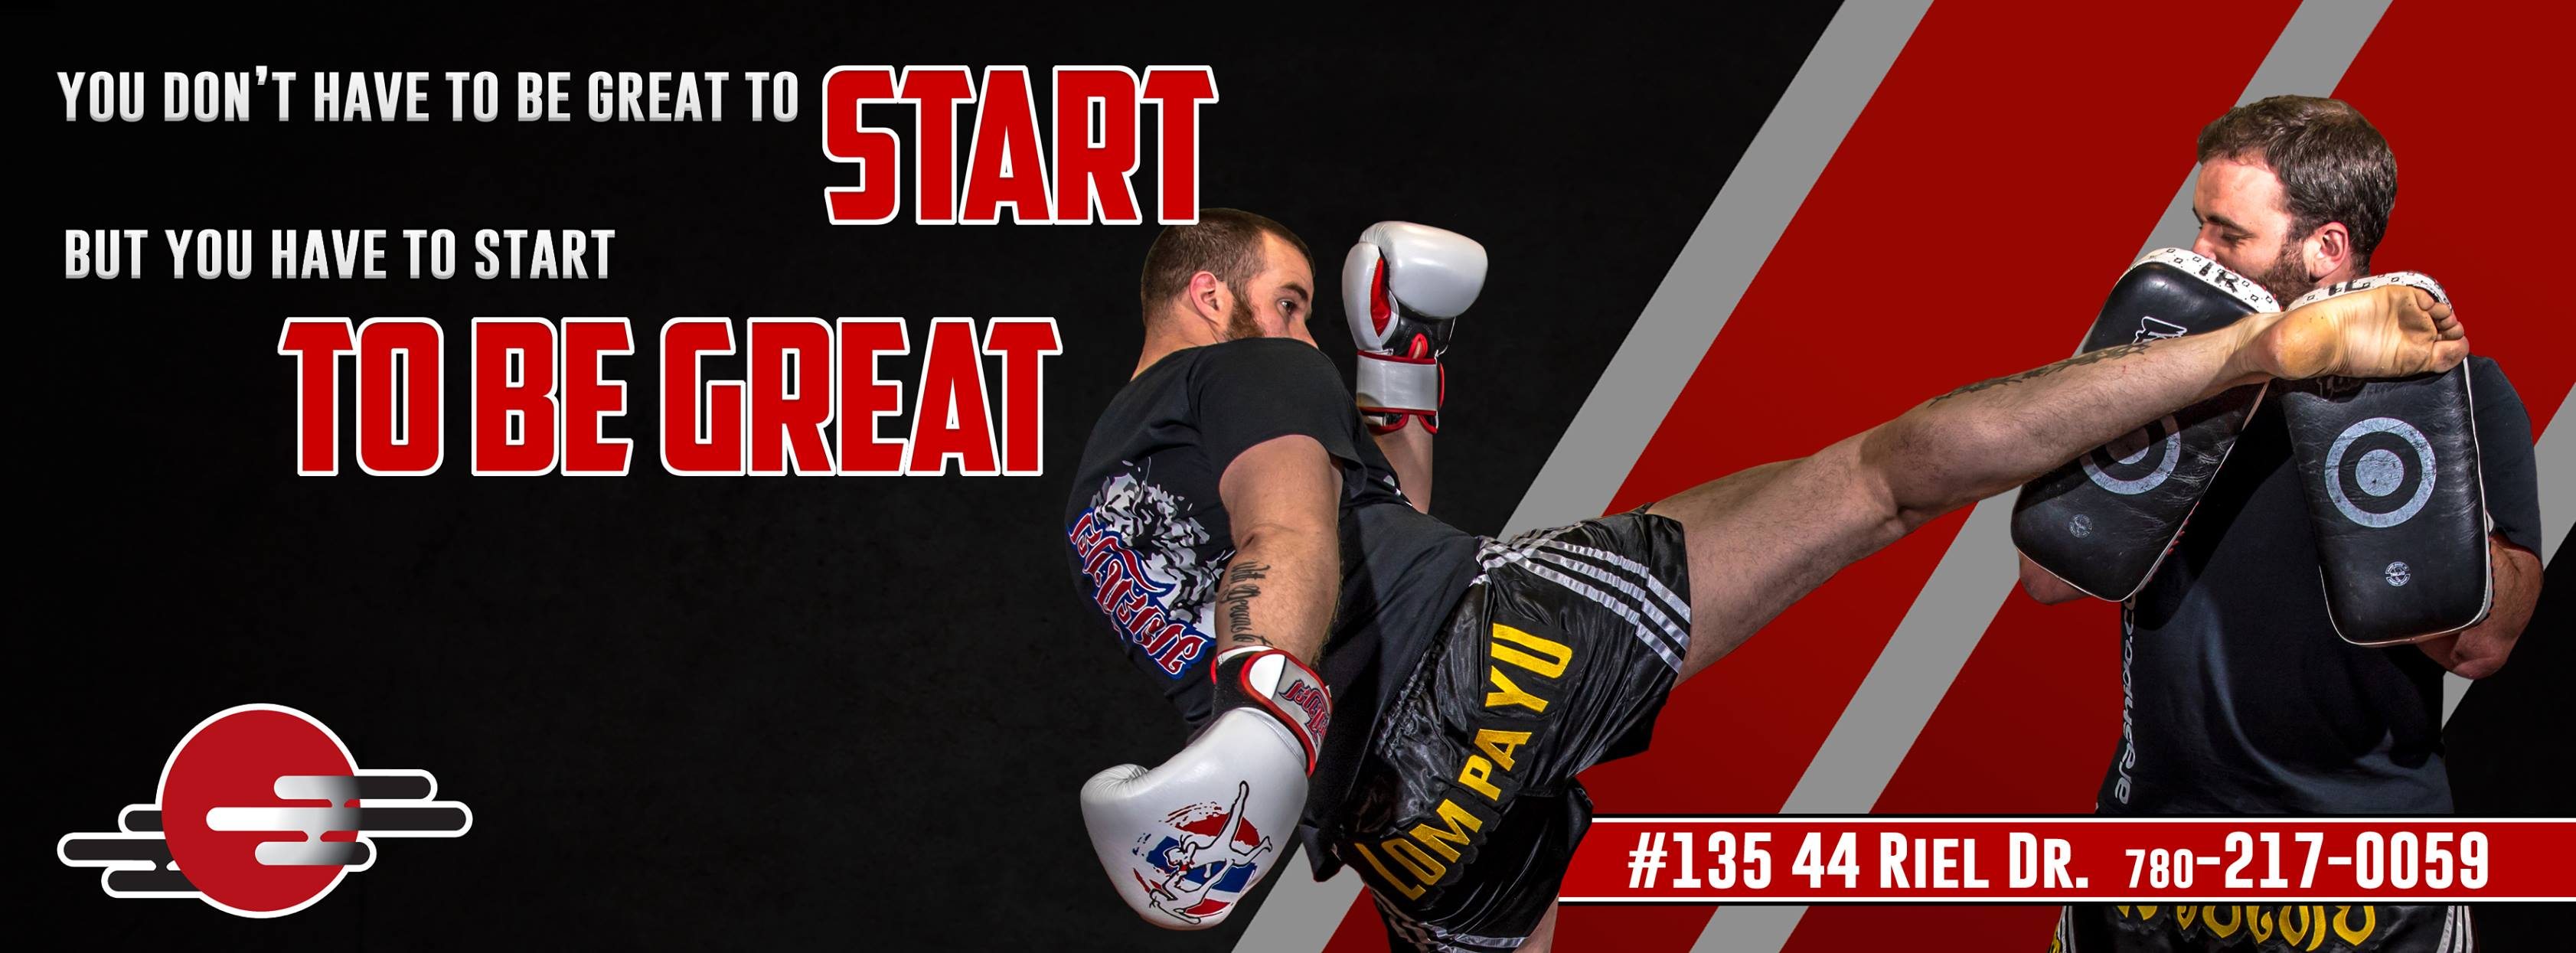 St Albert Arashi-do Martial Arts, Brazilian Jiu Jitsu, Mauy Thai Kickboxing